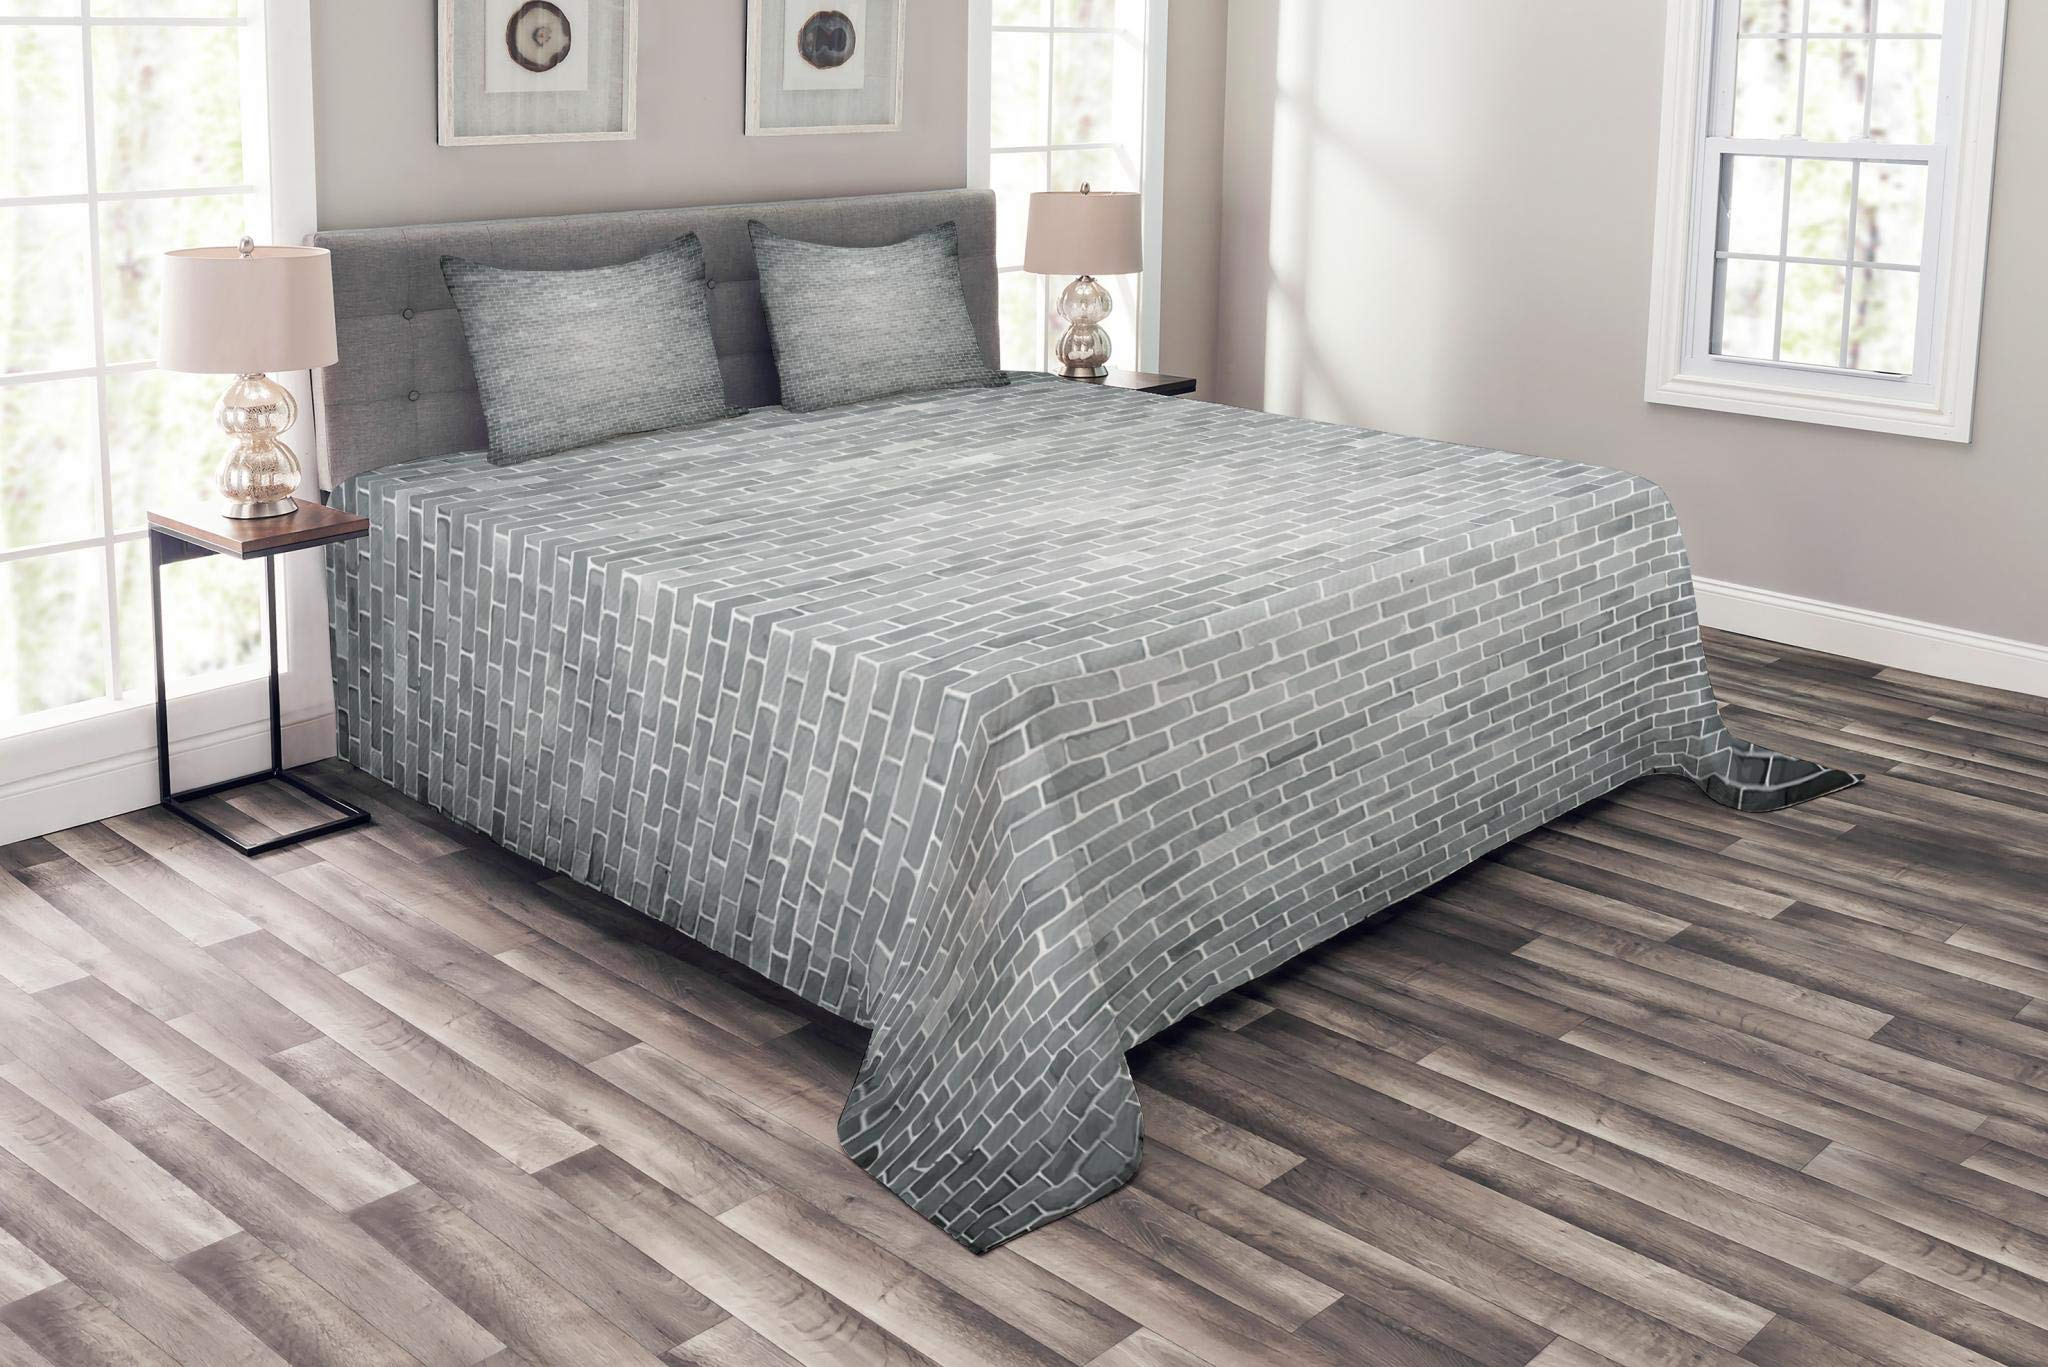 Lunarable Modern Bedspread Set King Size, Grunge Brick Wall Featured Urban Life Construction Architecture Artisan Photo Unity Print, Decorative Quilted 3 Piece Coverlet Set with 2 Pillow Shams, Grey